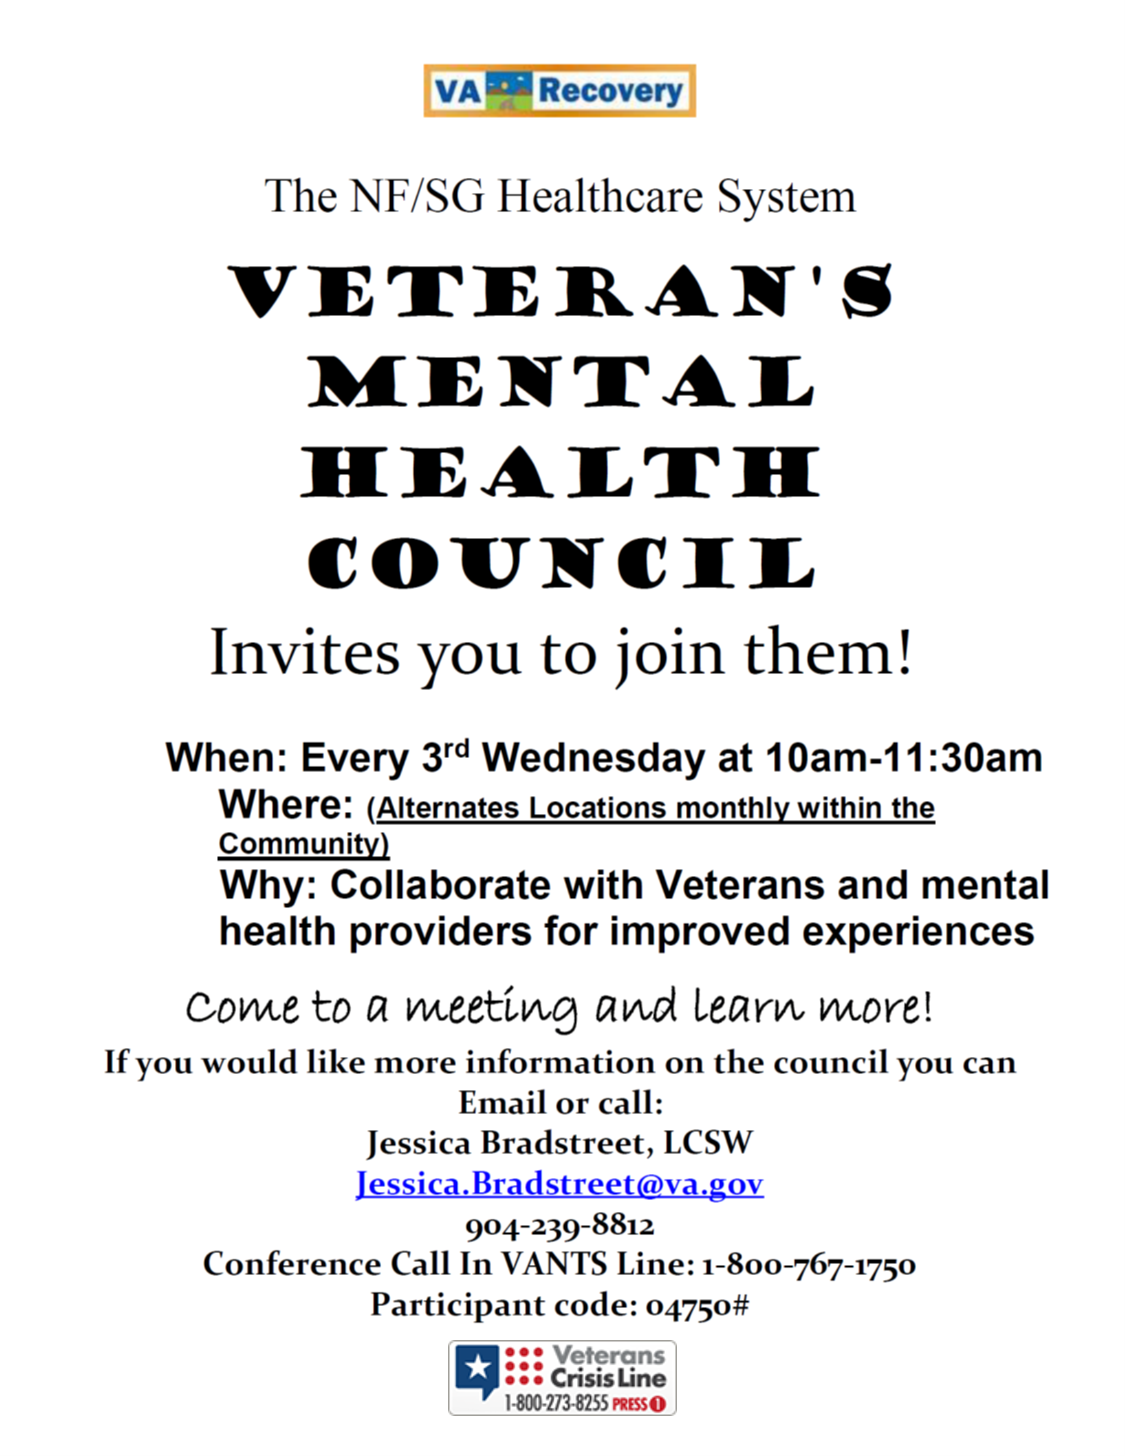 The NF/SG Healthcare System Veteran's Mental Health Council Invites you to join them! When: Every 3rd Wednesday at 10am-11:30am Where: Alternates Locations monthly within the community Why: Collaborate with veterans and mental health providers for improved experiences. come to a meeting and learn more! If you would like more information on the council you can email or call: Jessica Bradstreet, LCSW Jessica.bradstreet@va.gov 904-239-8812 Conference Call In VANTS Line:1-800-767-1750 Participant code: 04750#